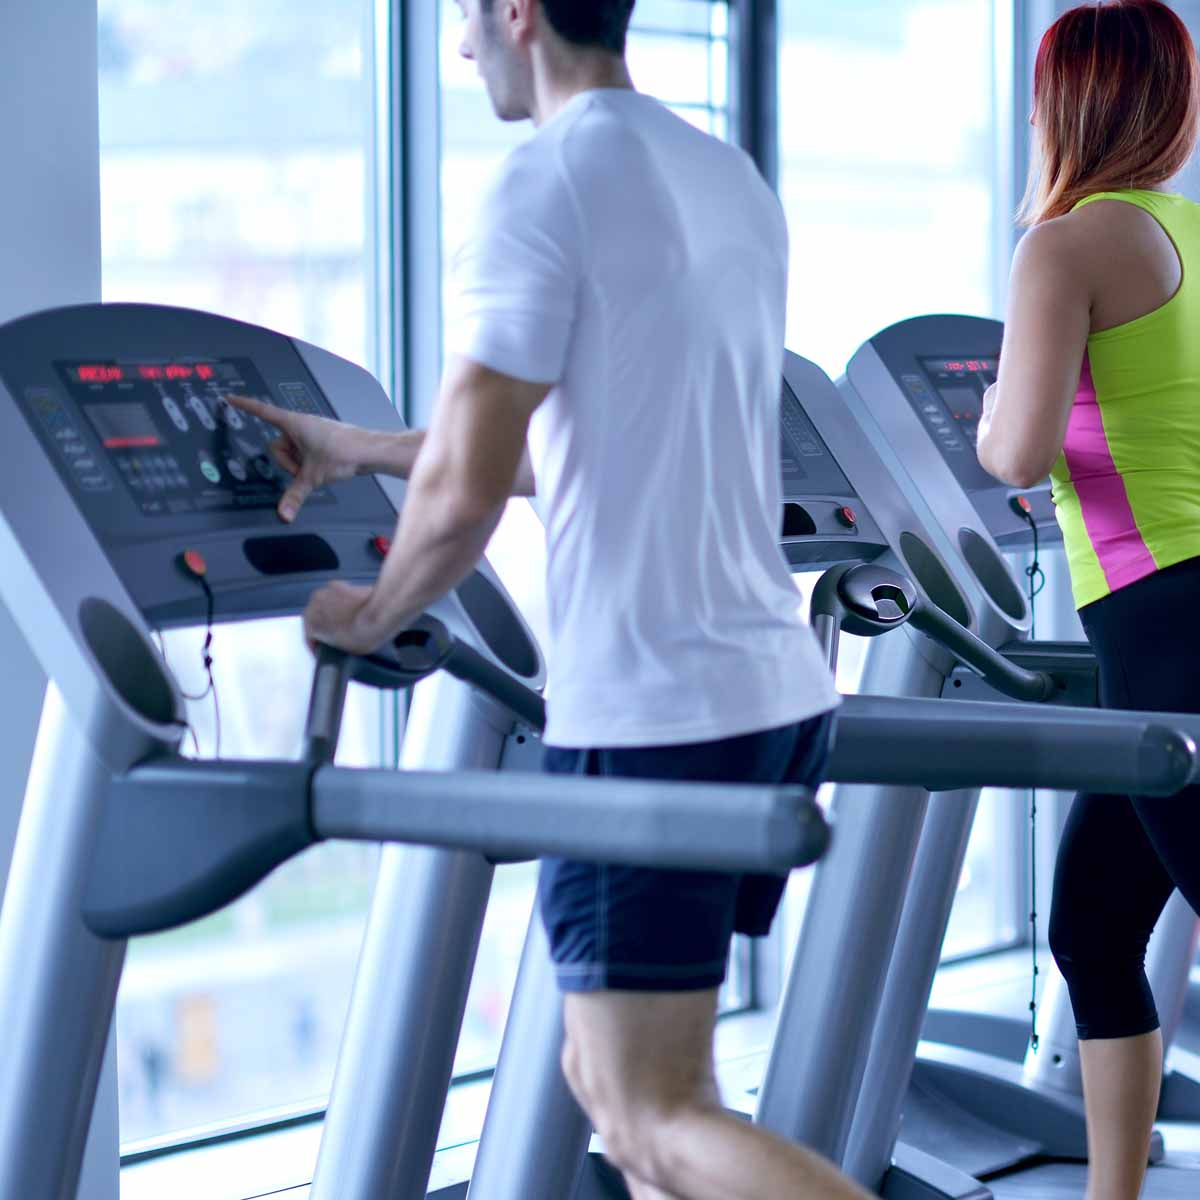 Fitness Equipment Services: Fitness Equipment Maintenance And Repair Services